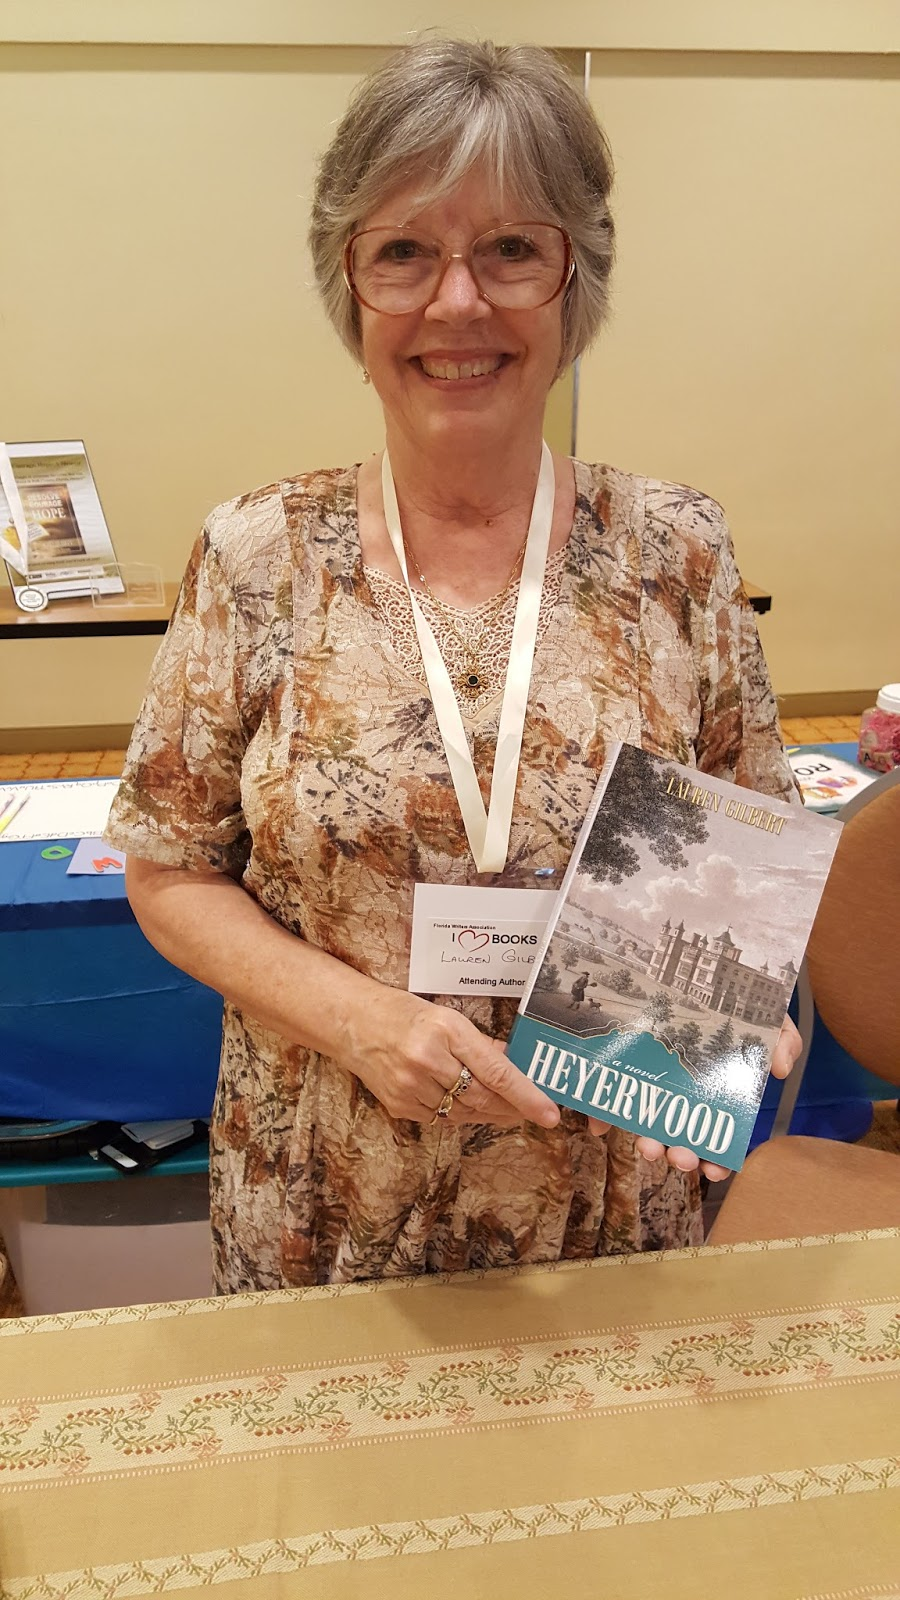 I Had A Fascinating Conversation With Mcv Egan About The Research  Involved With Her Novel